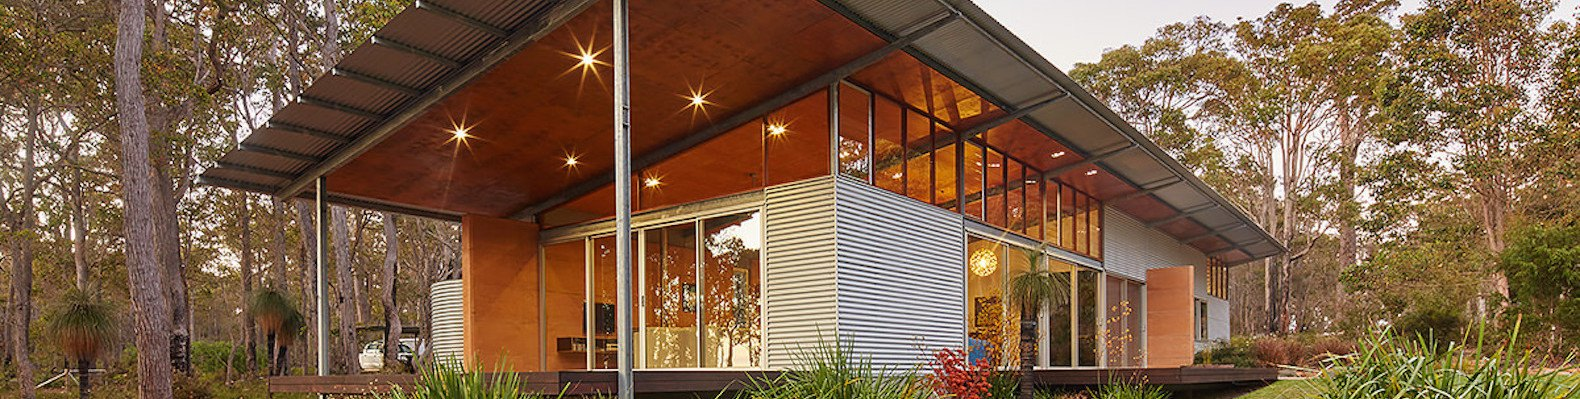 Solar-powered Bush House exemplifies chic eco-friendly living in ...